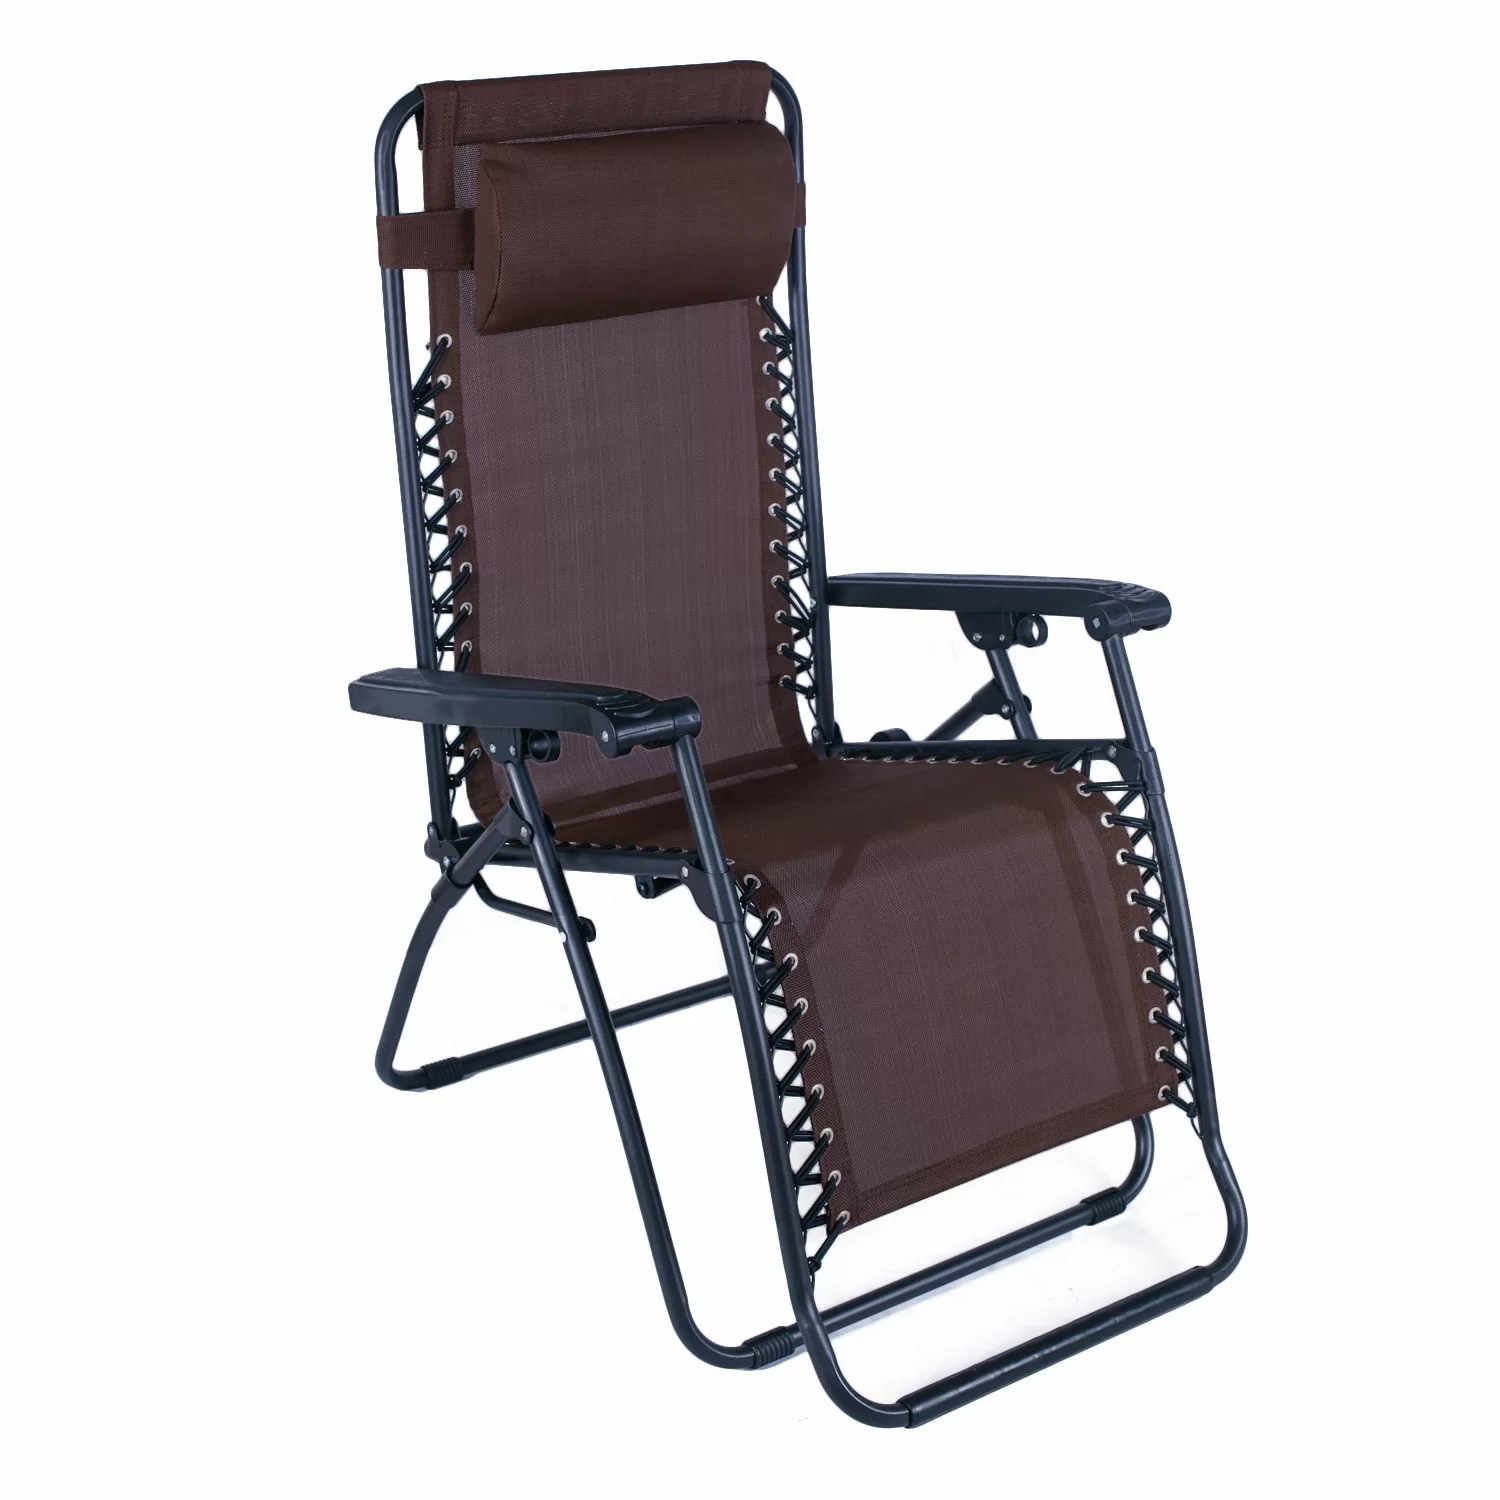 recliner lawn chairs folding beach chair low adecotrading outdoor and reclining zero gravity